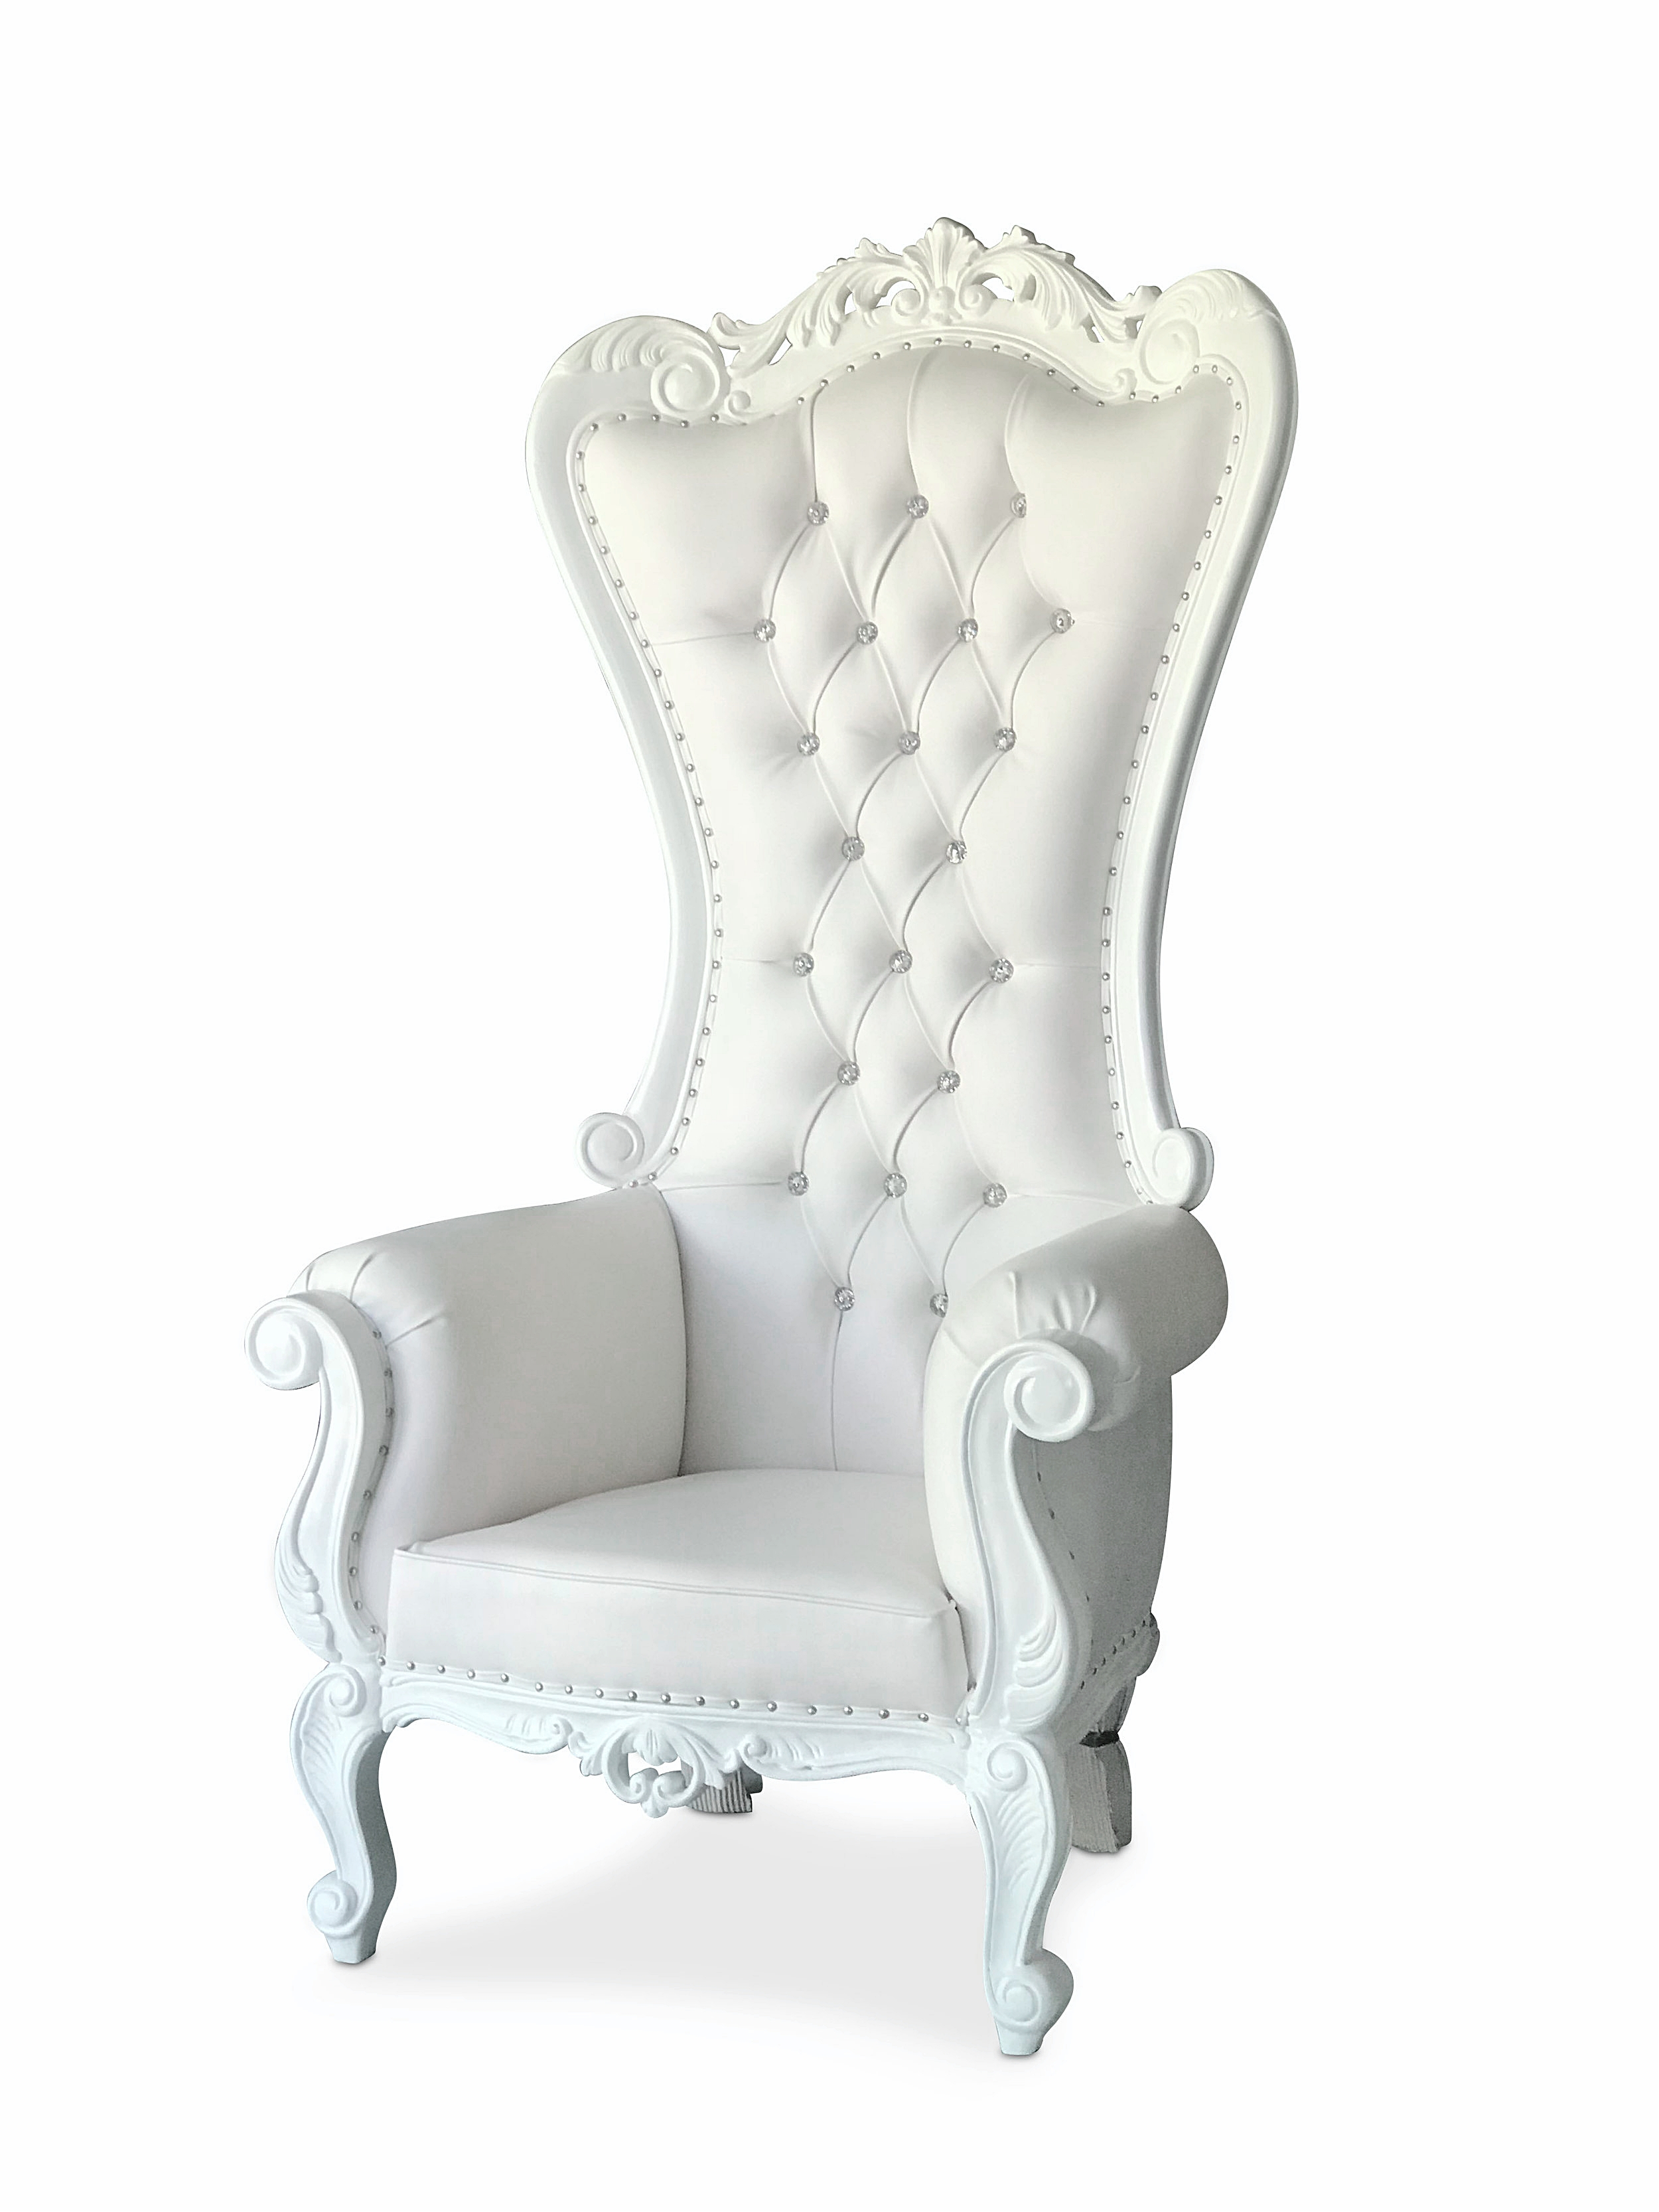 table chair rentals orlando blow up chairs for adults rental best house interior today tables tent fun party rh funpartyrentals net